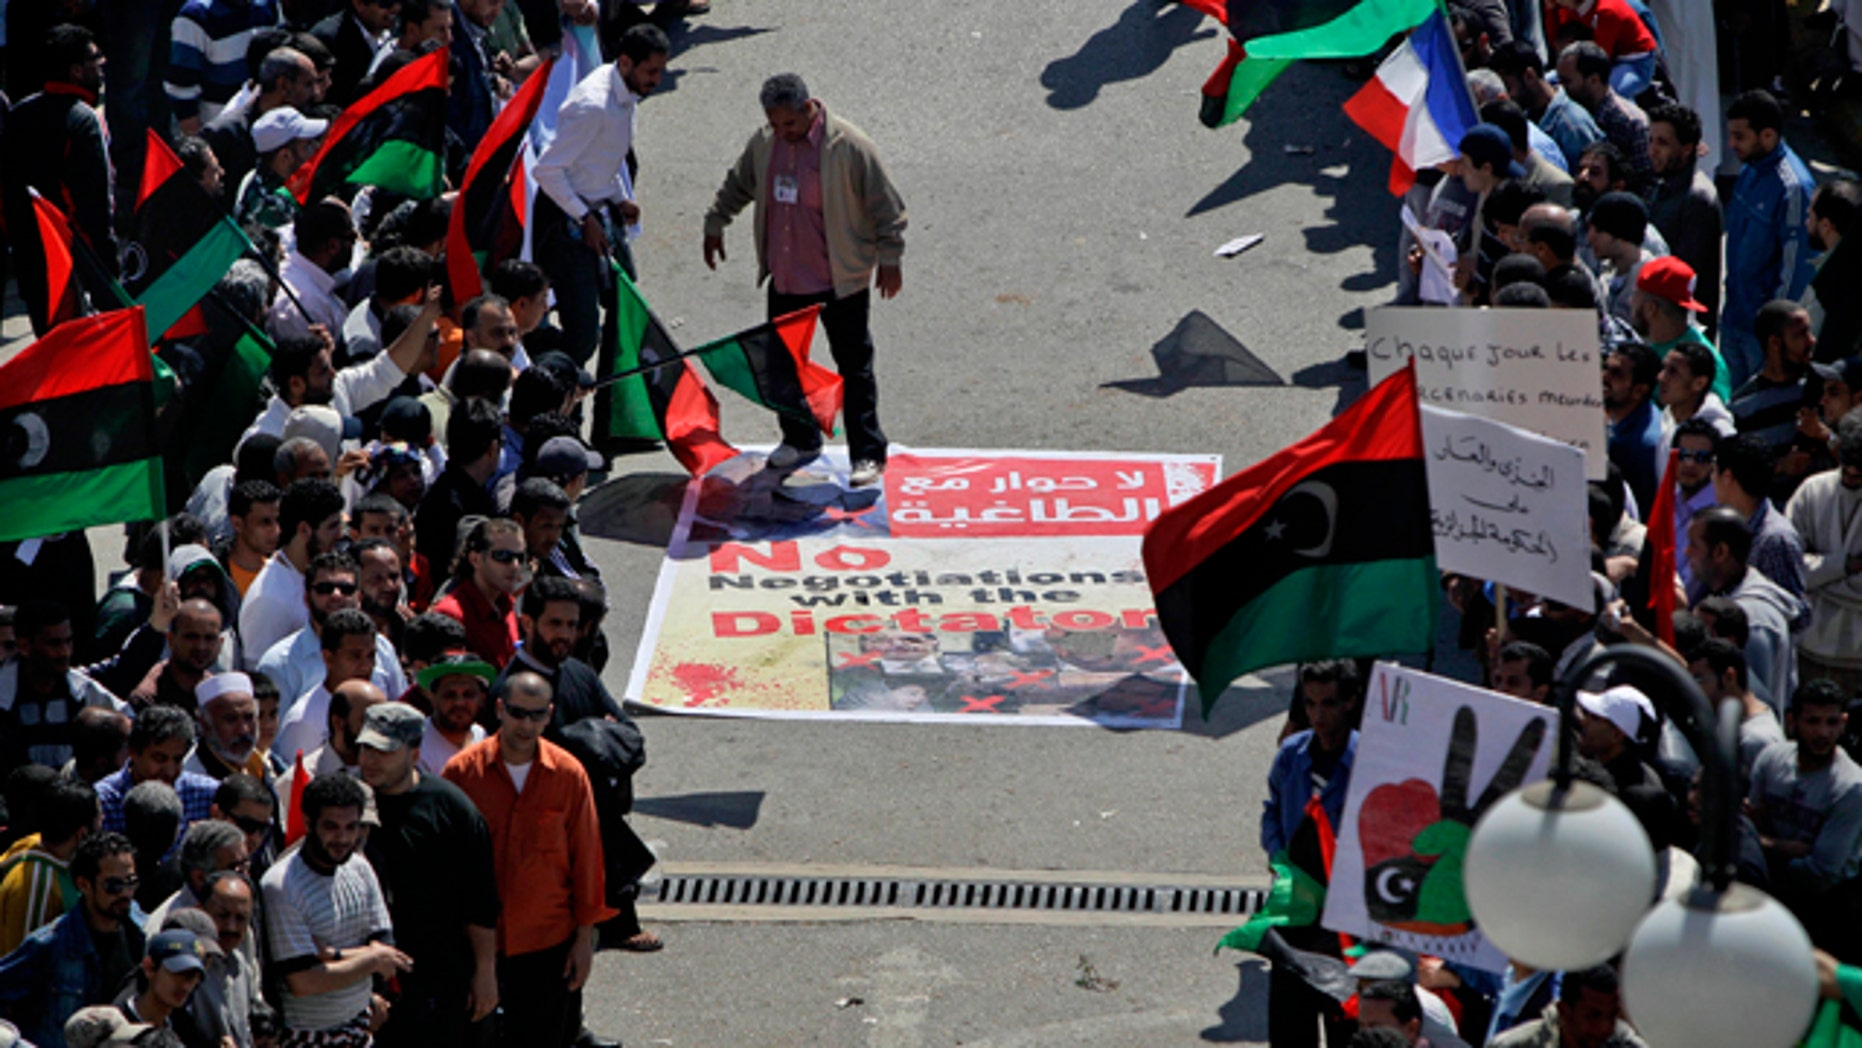 April 11: An angry but peaceful crowd lines the route to the Tibesty Hotel where an African Union delegation was meeting with opposition leaders in Benghazi, Libya. The African Union delegation took its cease-fire proposal to the rebels' eastern stronghold and was met with protests by crowds opposed to any peace until the country's longtime leader Muammar Qaddafi gives up power. (AP)